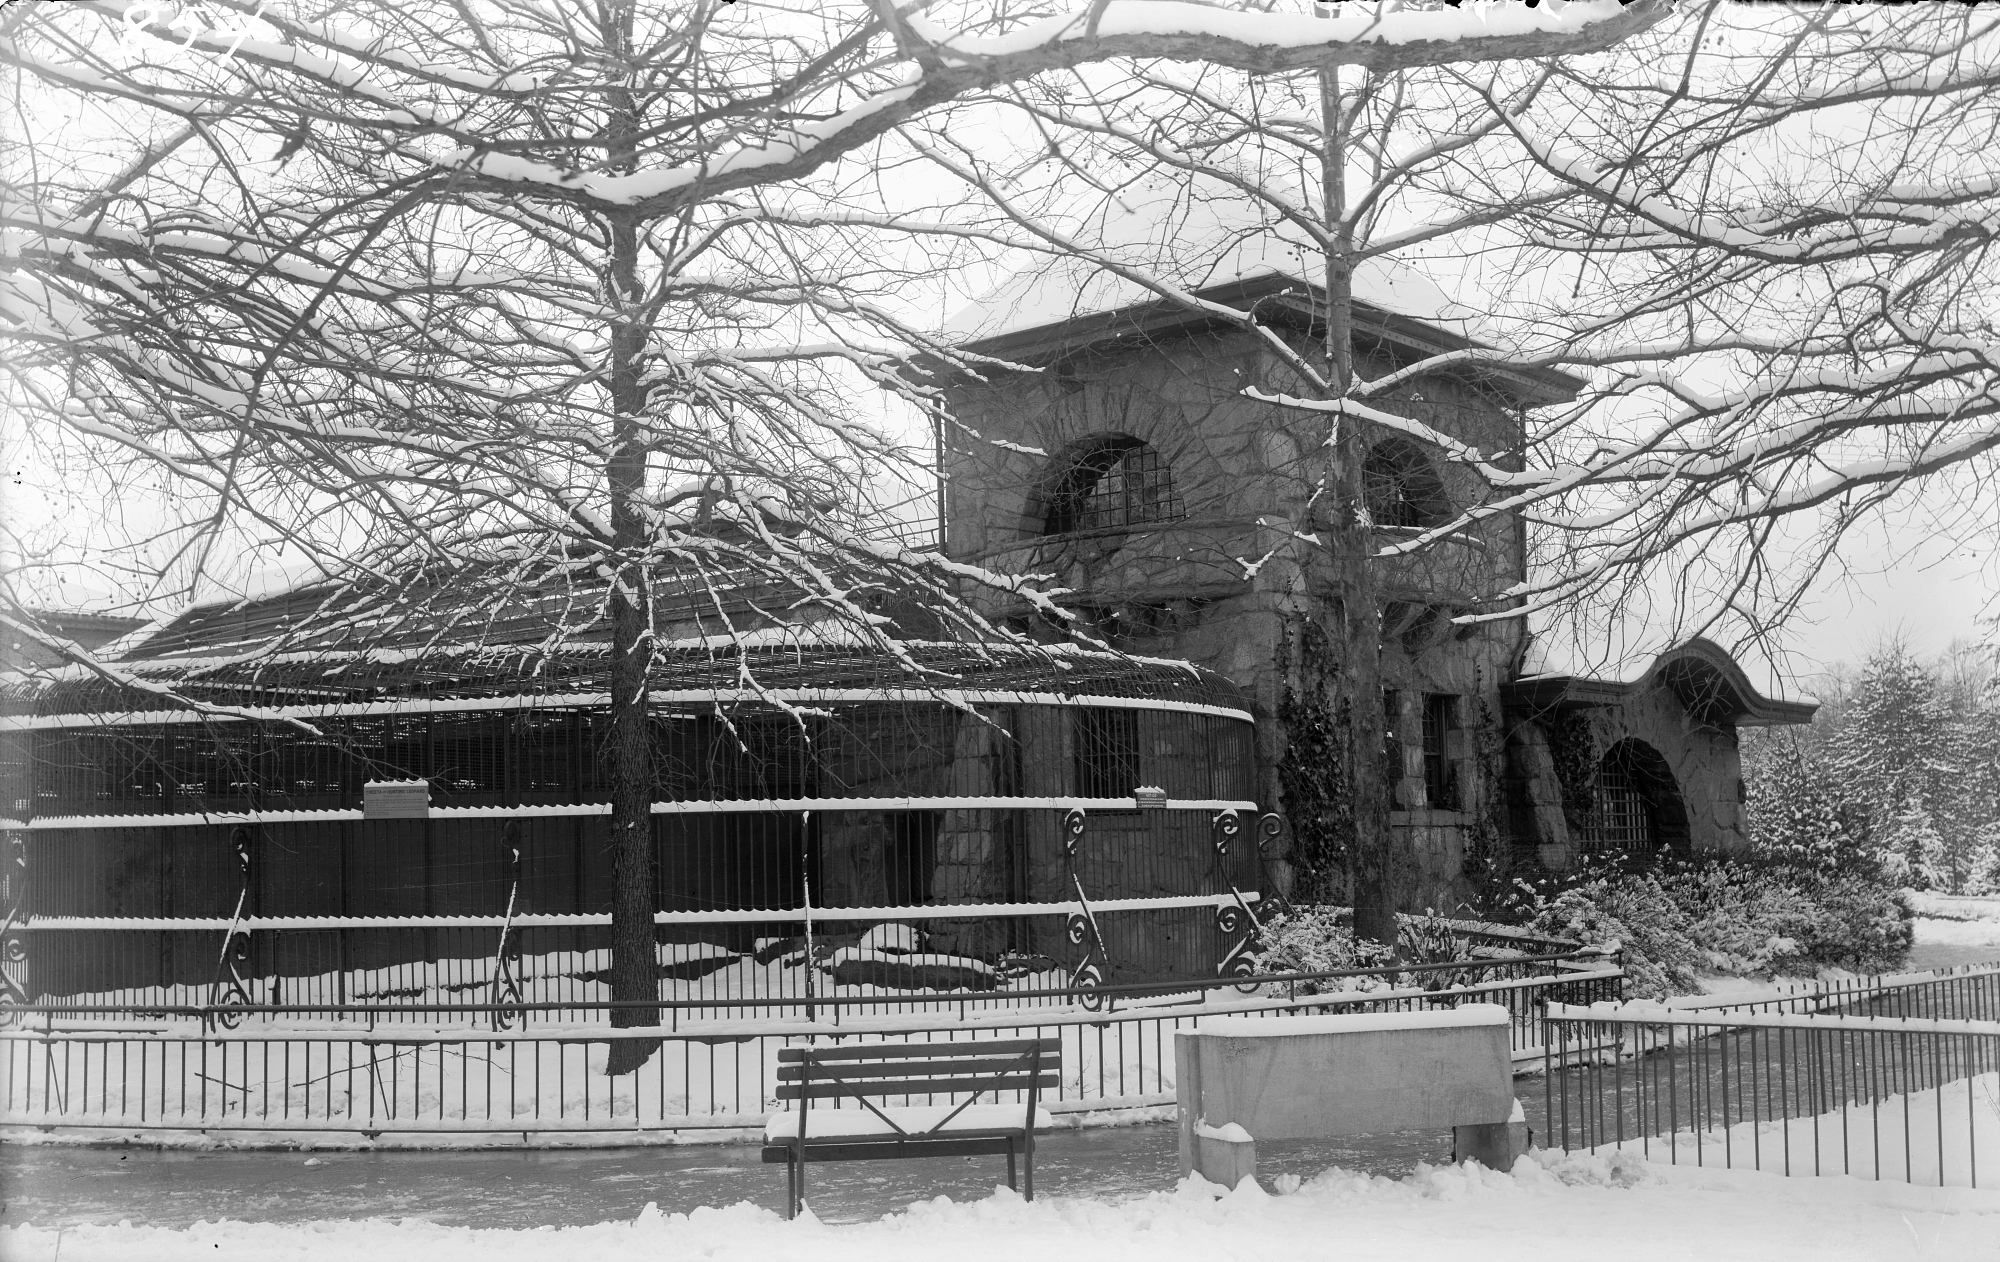 The Lion House at the National Zoological Park covered in snow, 1913.